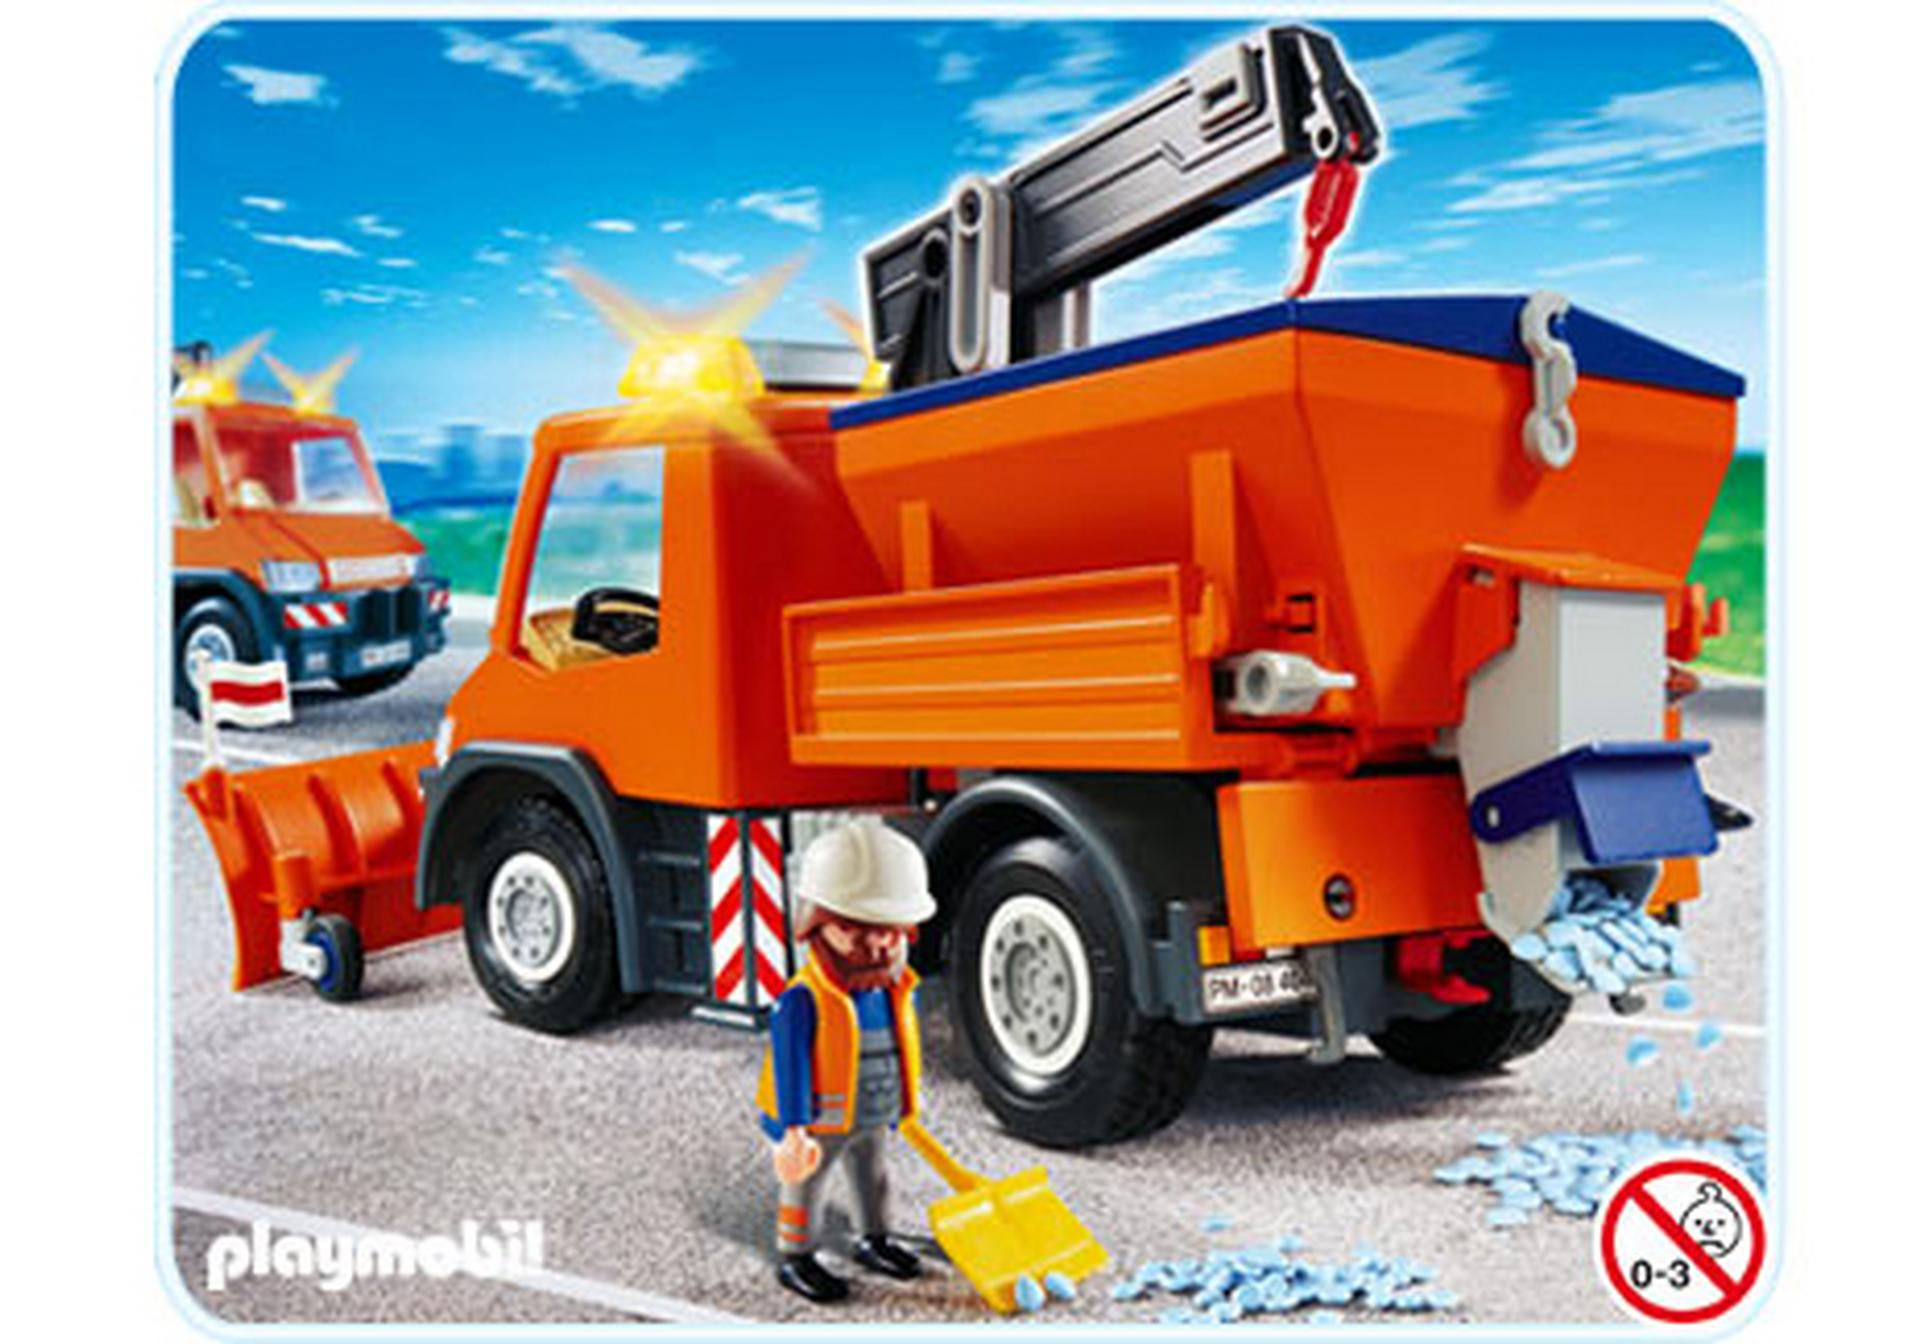 Chauffeur avec camion chasse neige 4046 a playmobil france - Playmobil camion ...